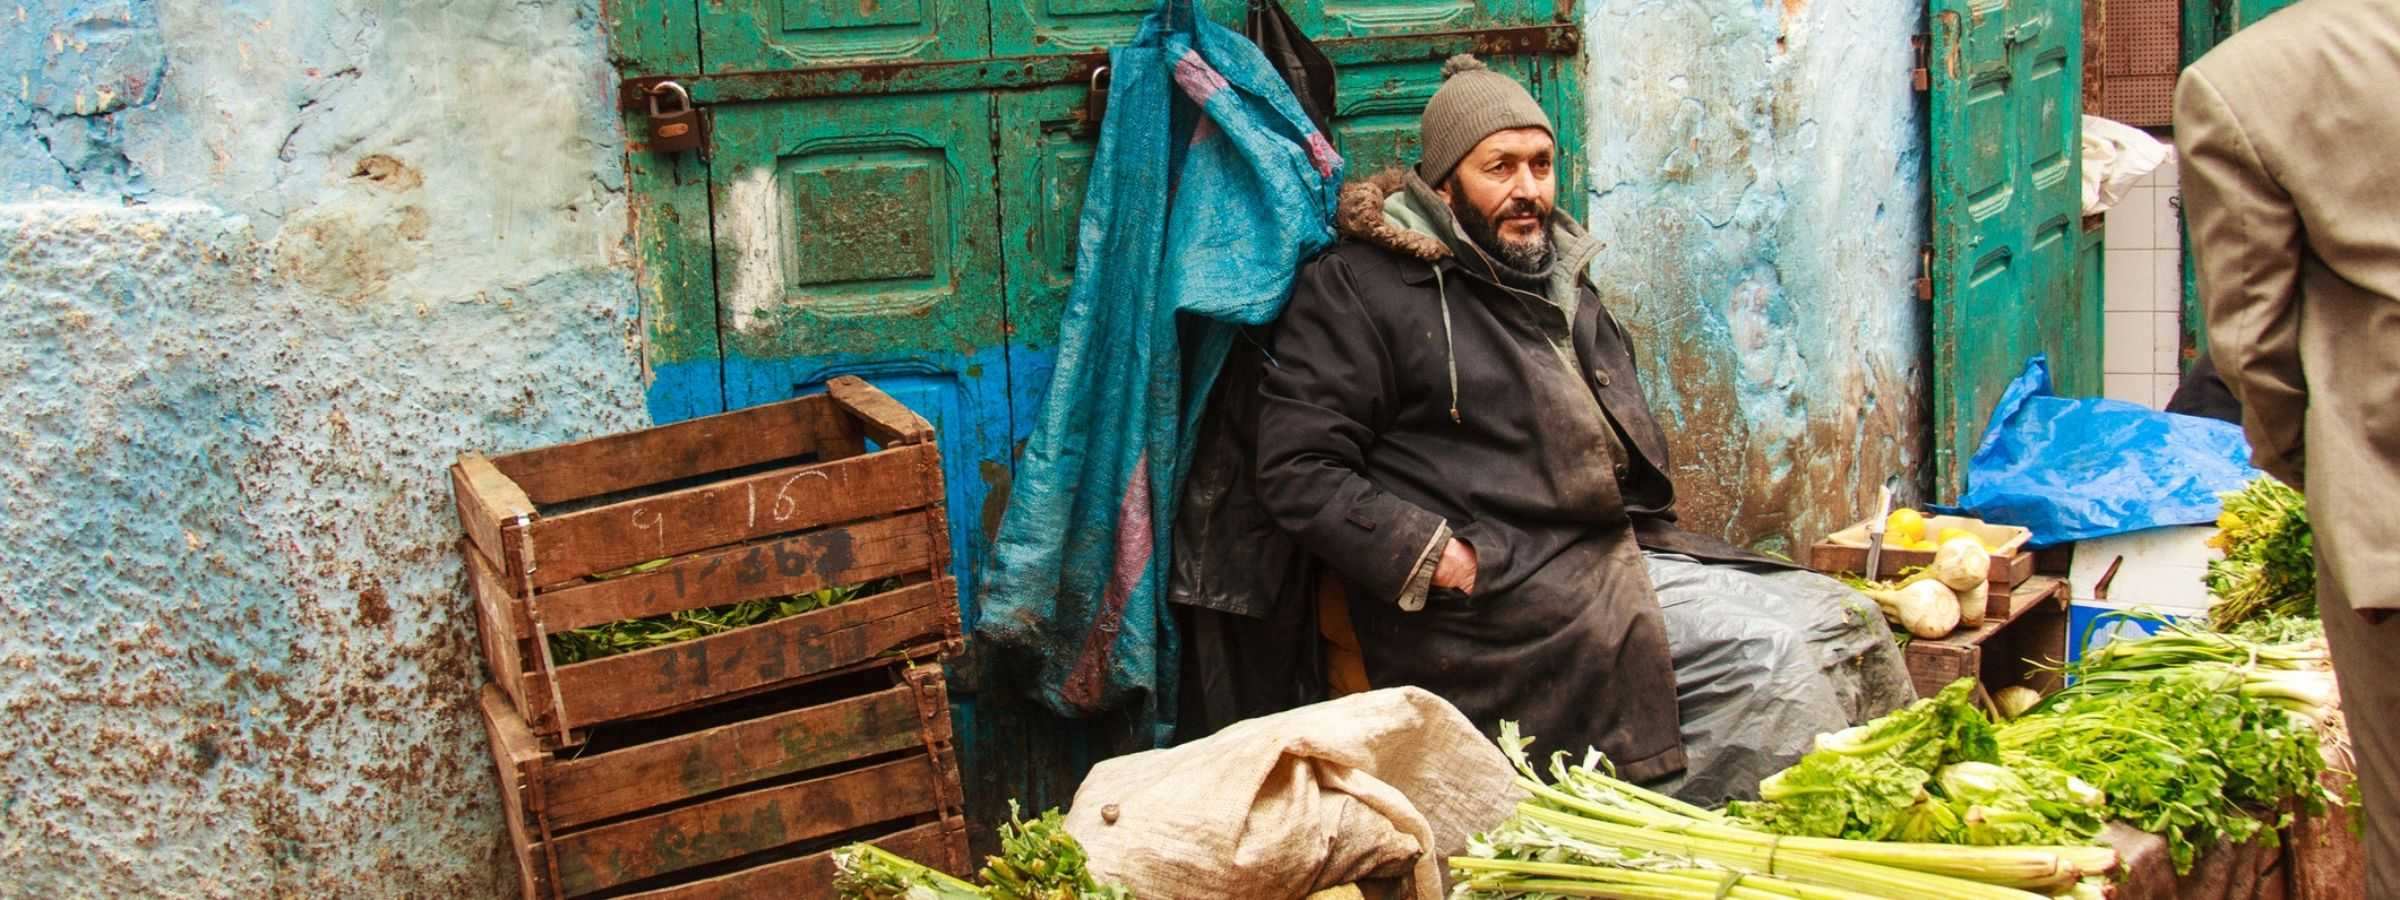 A vegetable seller sits near his produce in Rabat, Morocco